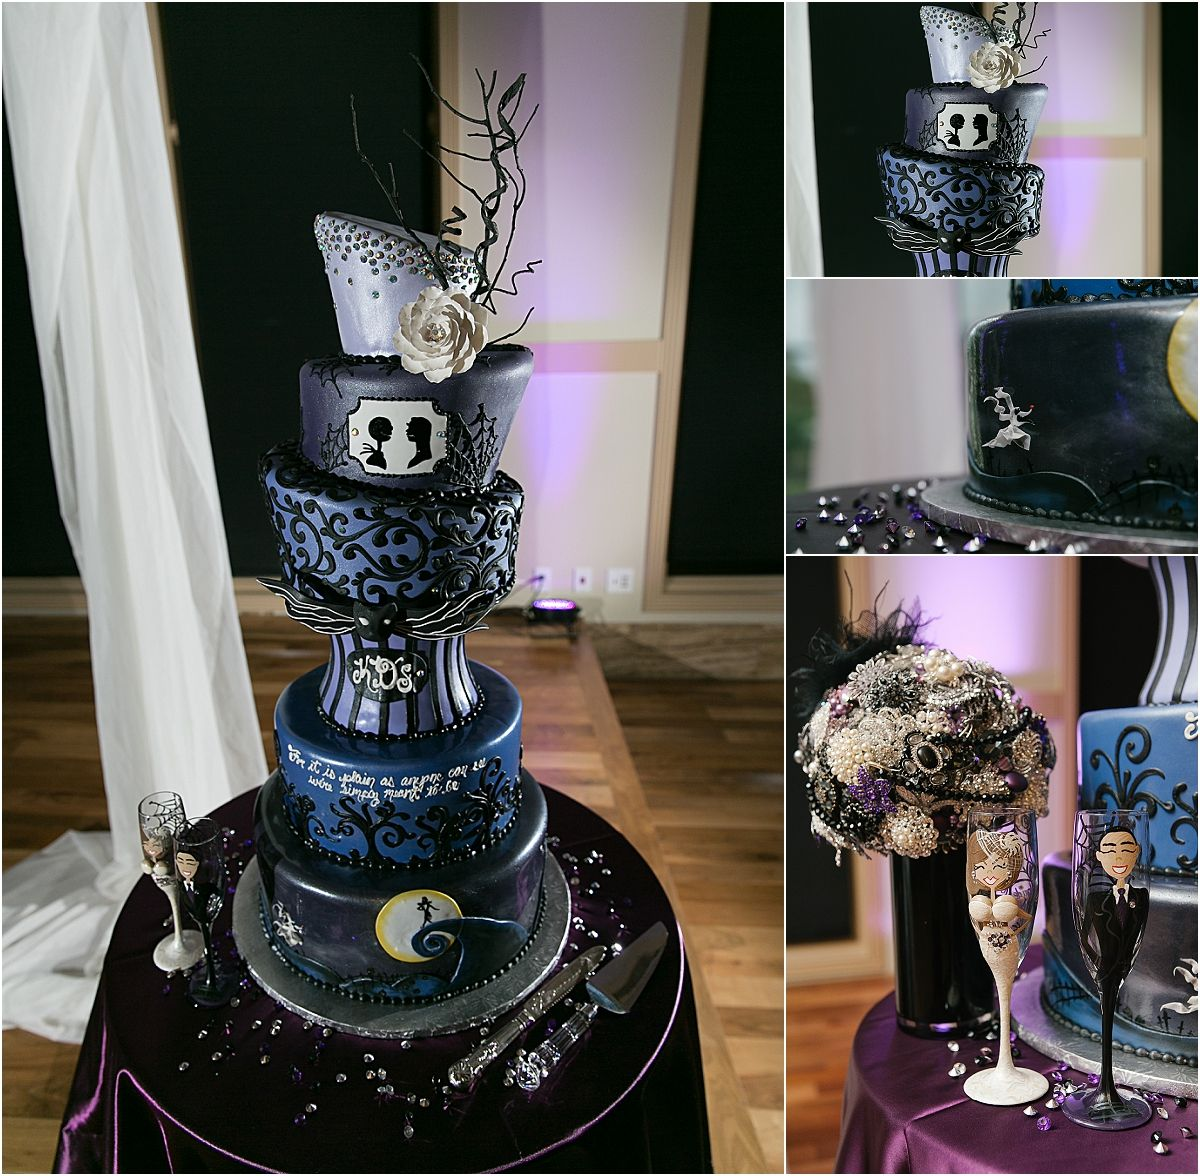 Tim Burtons The Nightmare Before Christmas Wedding Cake By The